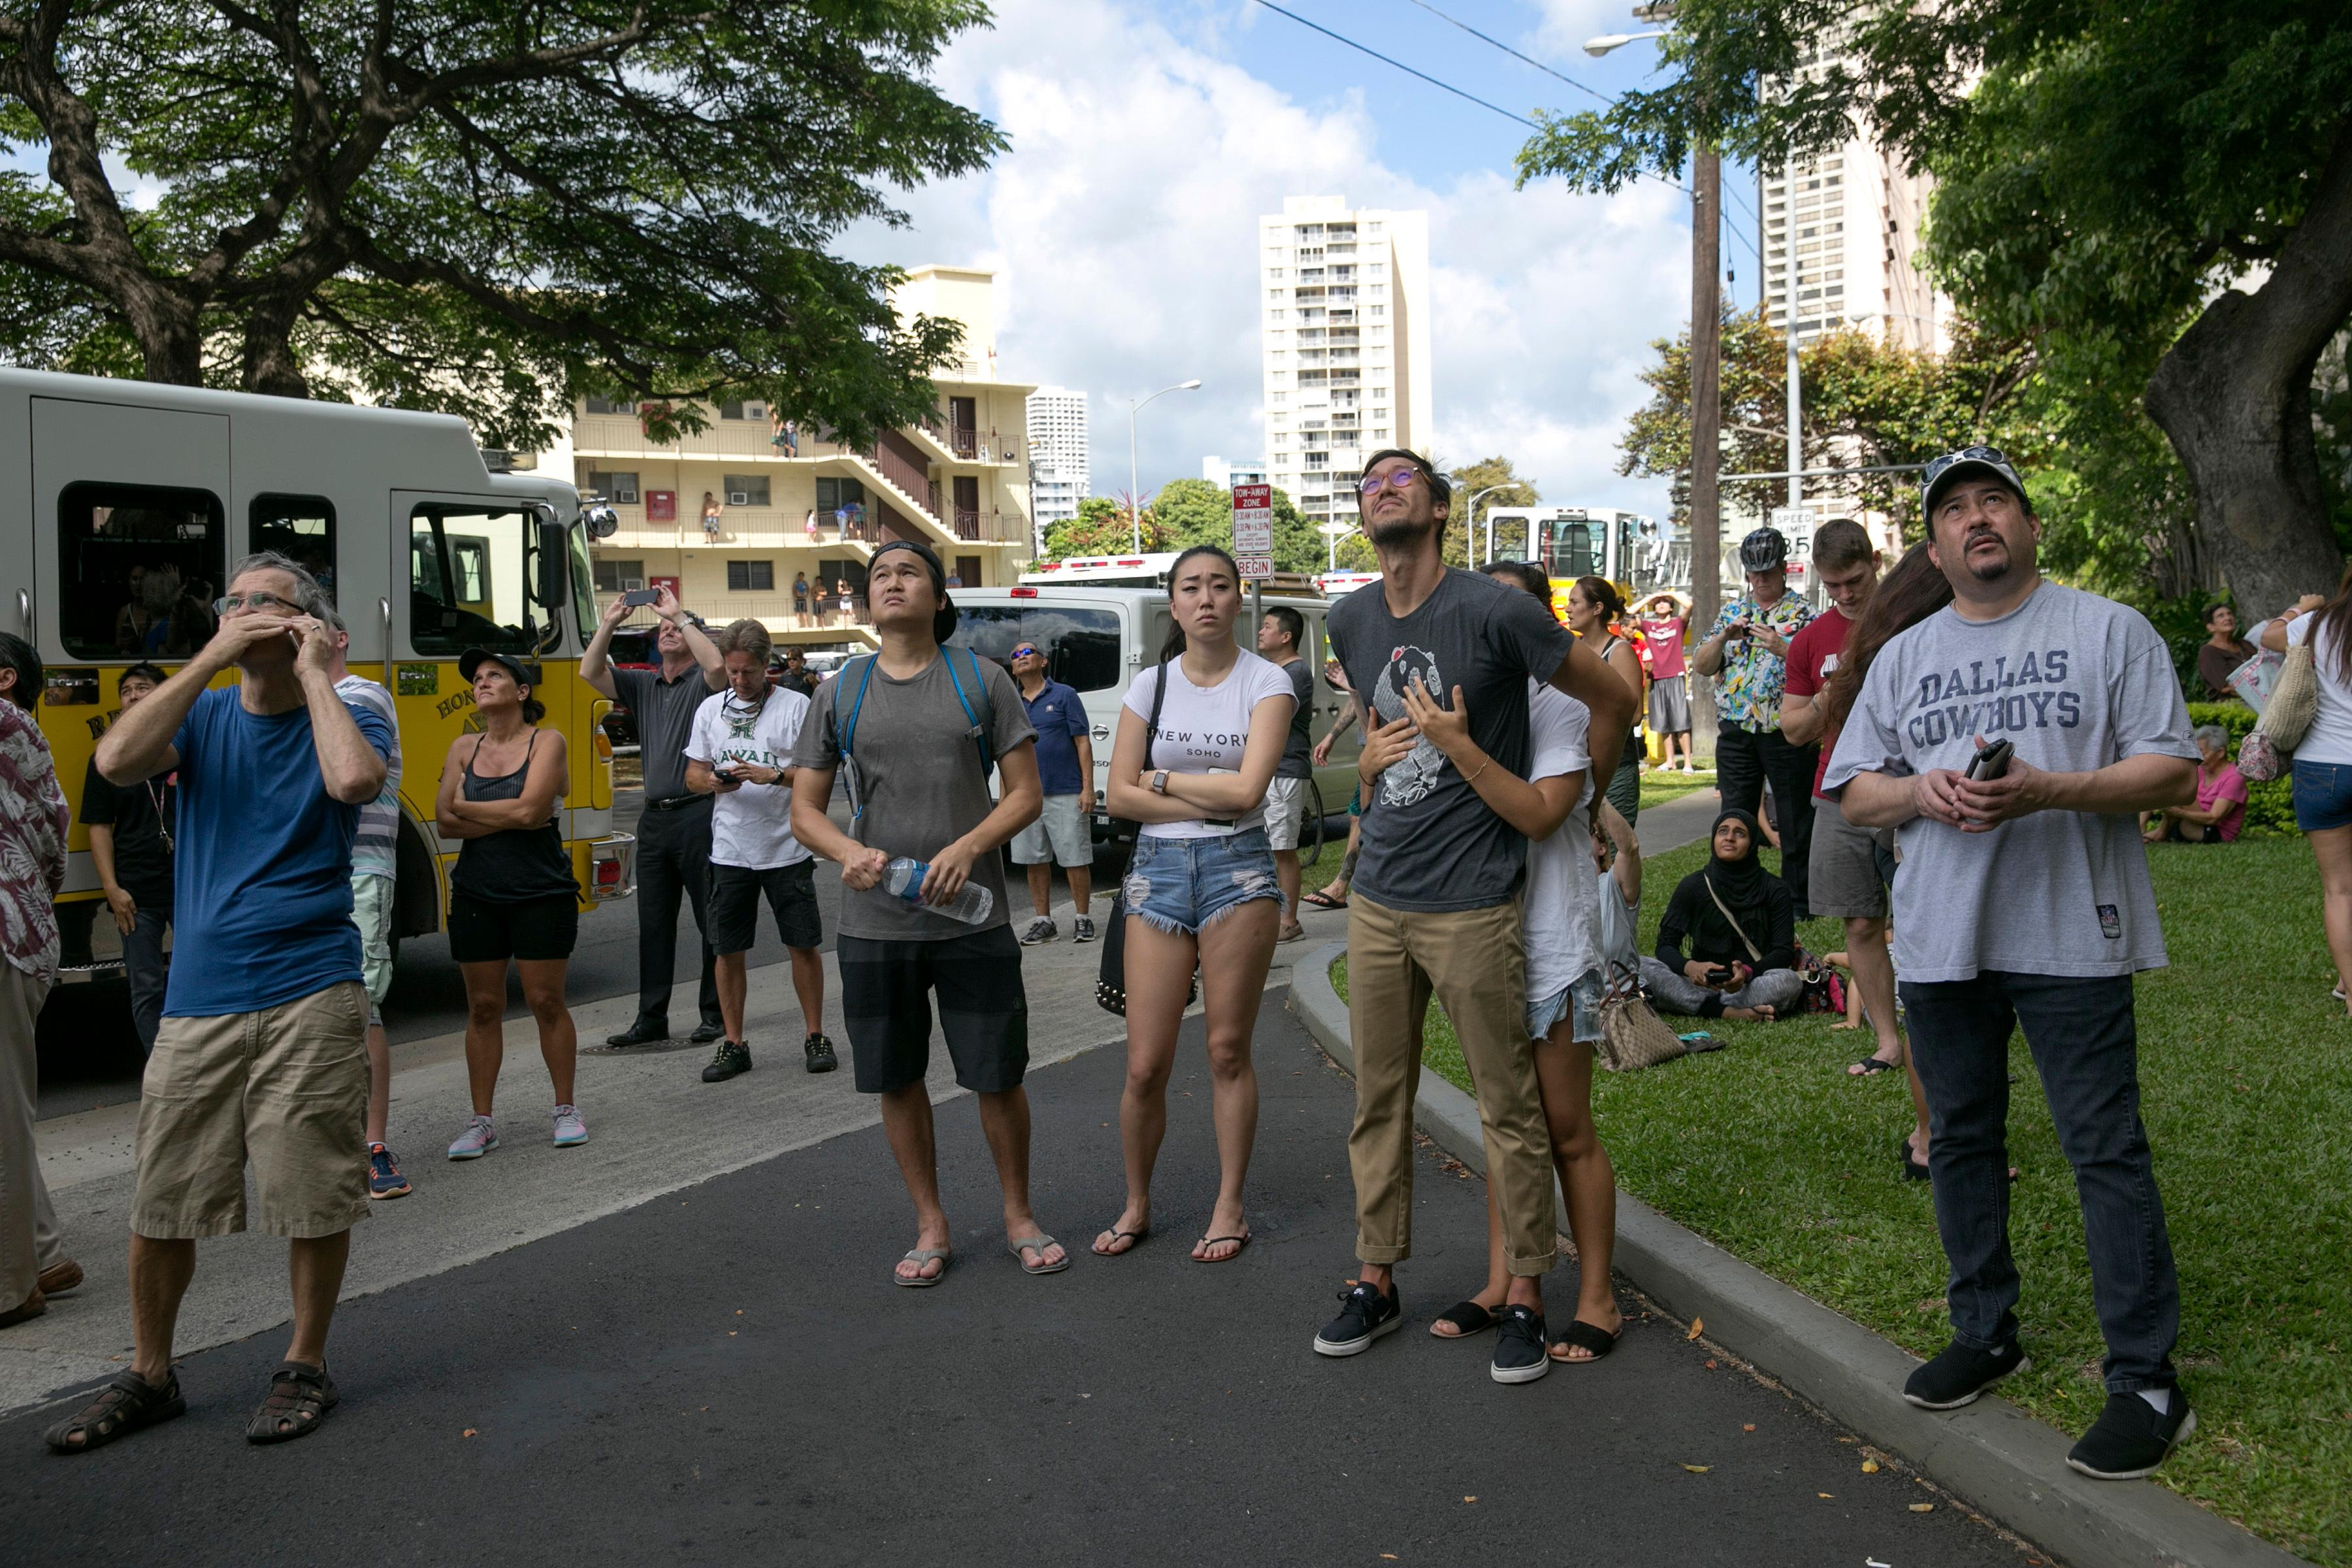 Crowds gather to watch a fire burn at the Marco Polo apartment complex, Friday, July 14, 2017, in Honolulu. (AP Photo/Marco Garcia)